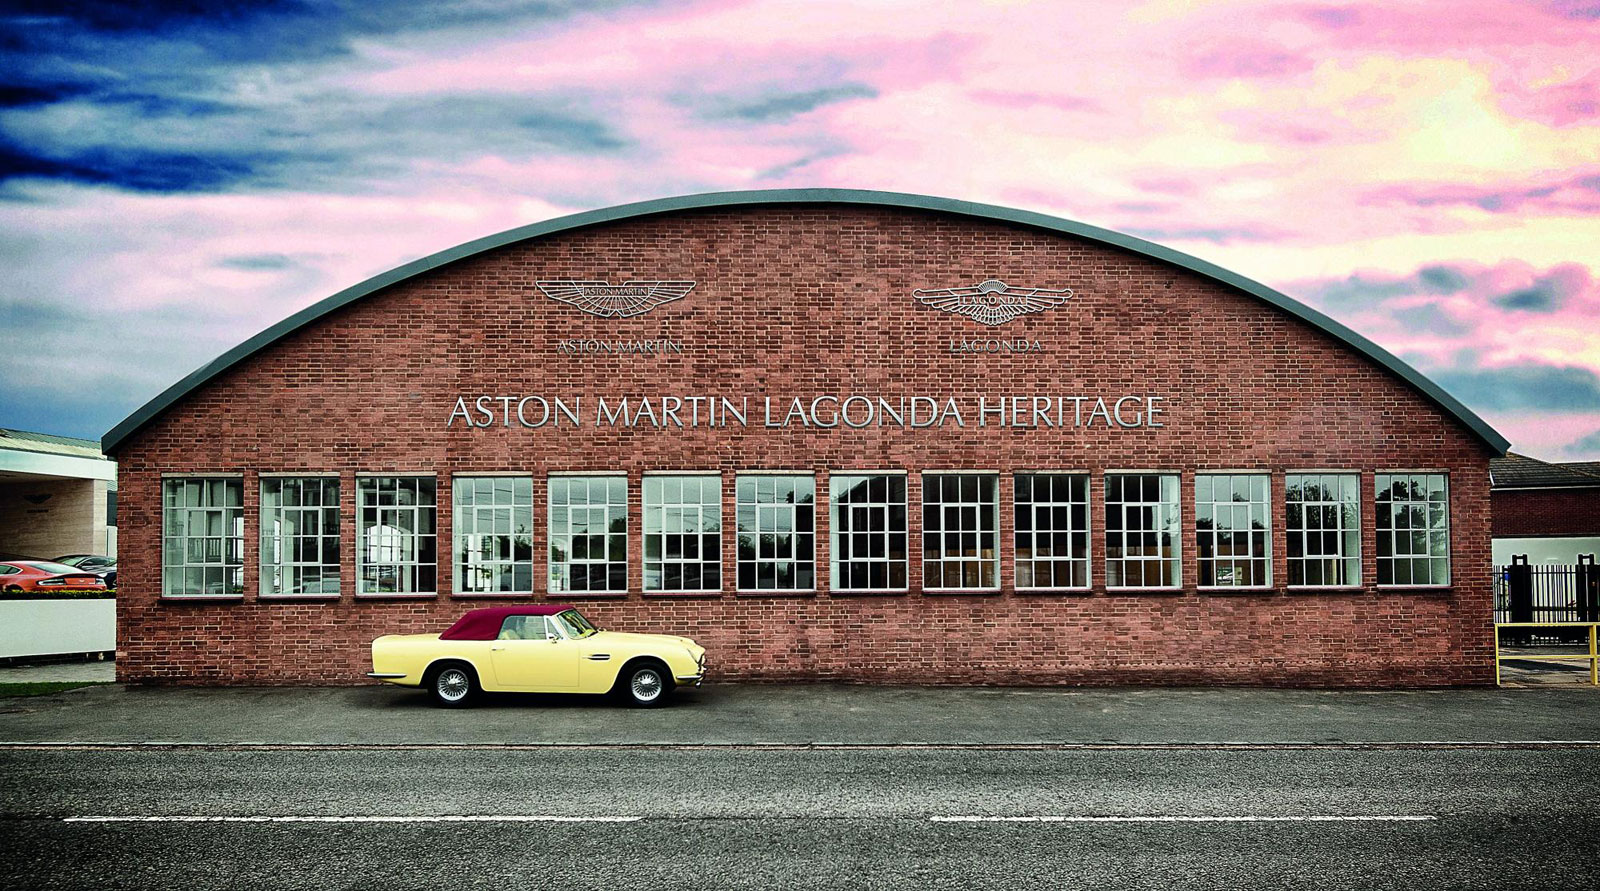 Take A Video Tour Of The Aston Martin Works